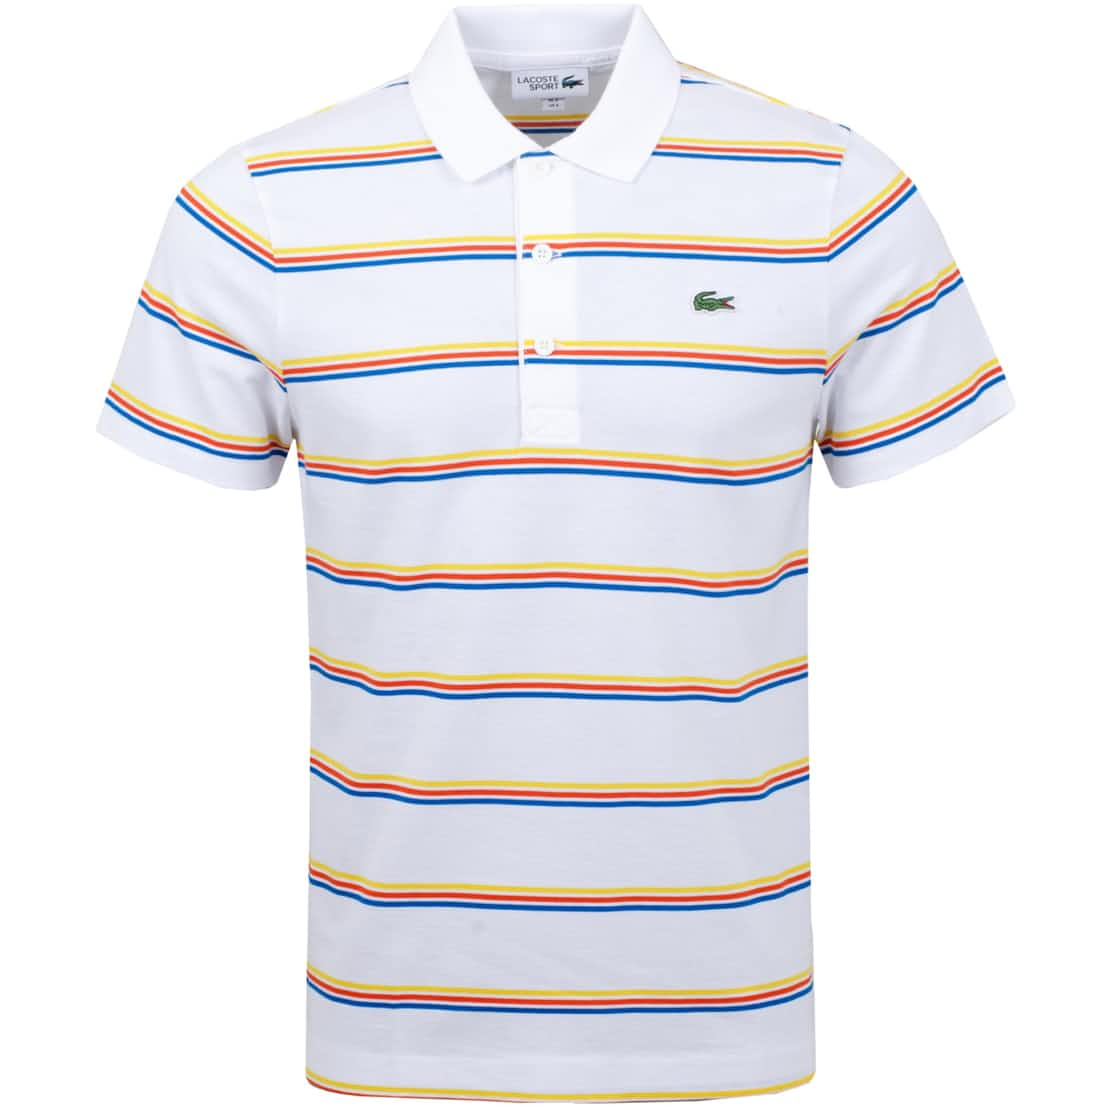 Triple Stripe Polo White/Ultramarine/Glaieul - AW20